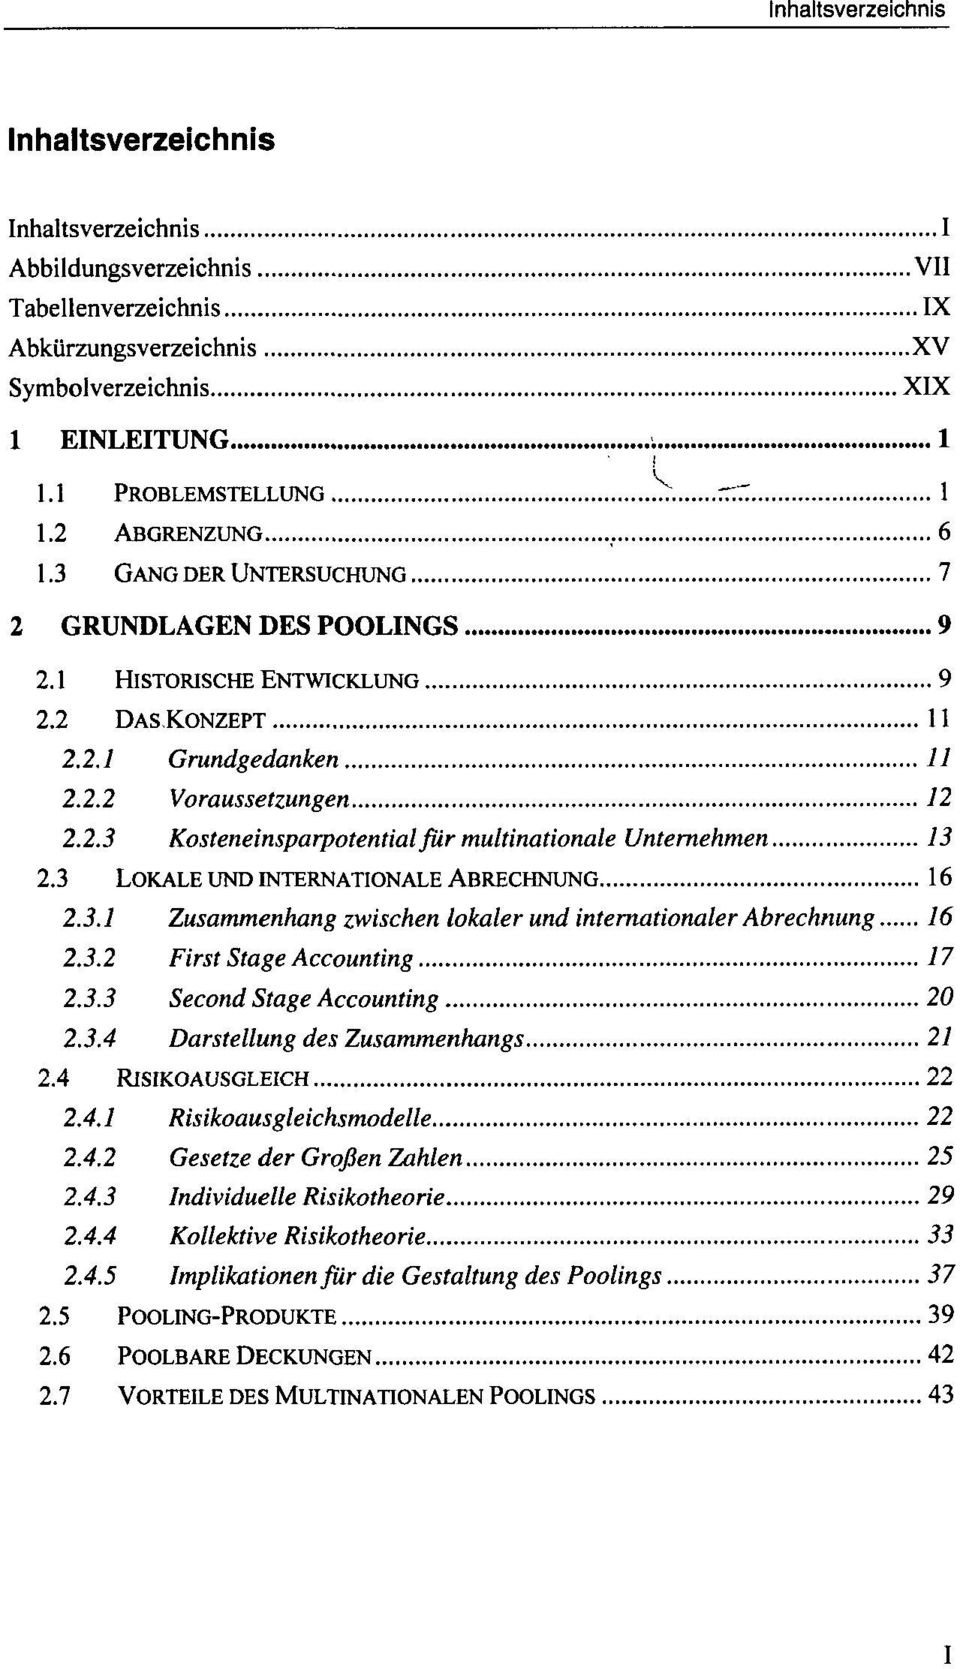 3 LOKALE UND INTERNATIONALE ABRECHNUNG 16 2.3.1 Zusammenhang zwischen lokaler und internationaler Abrechnung 16 2.3.2 First Stage Accounting 17 2.3.3 Second Stage Accounting 20 2.3.4 Darstellung des Zusammenhangs 21 2.